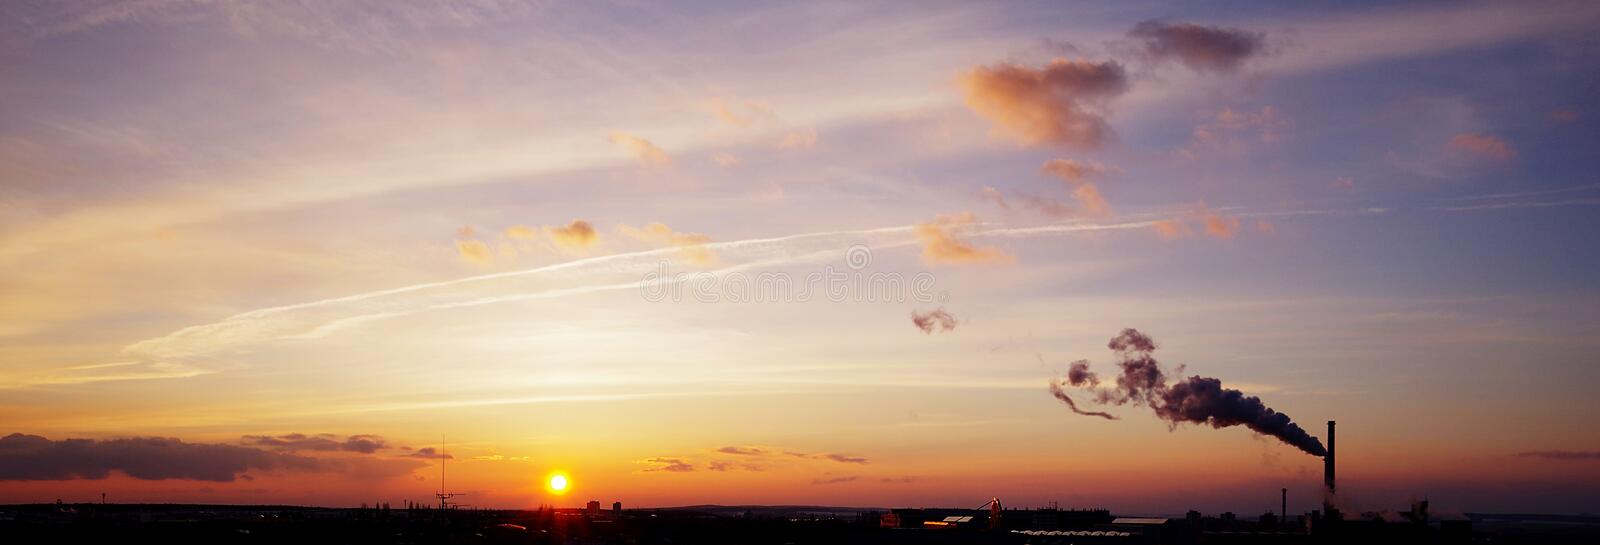 Sunset panorama royalty free stock photography